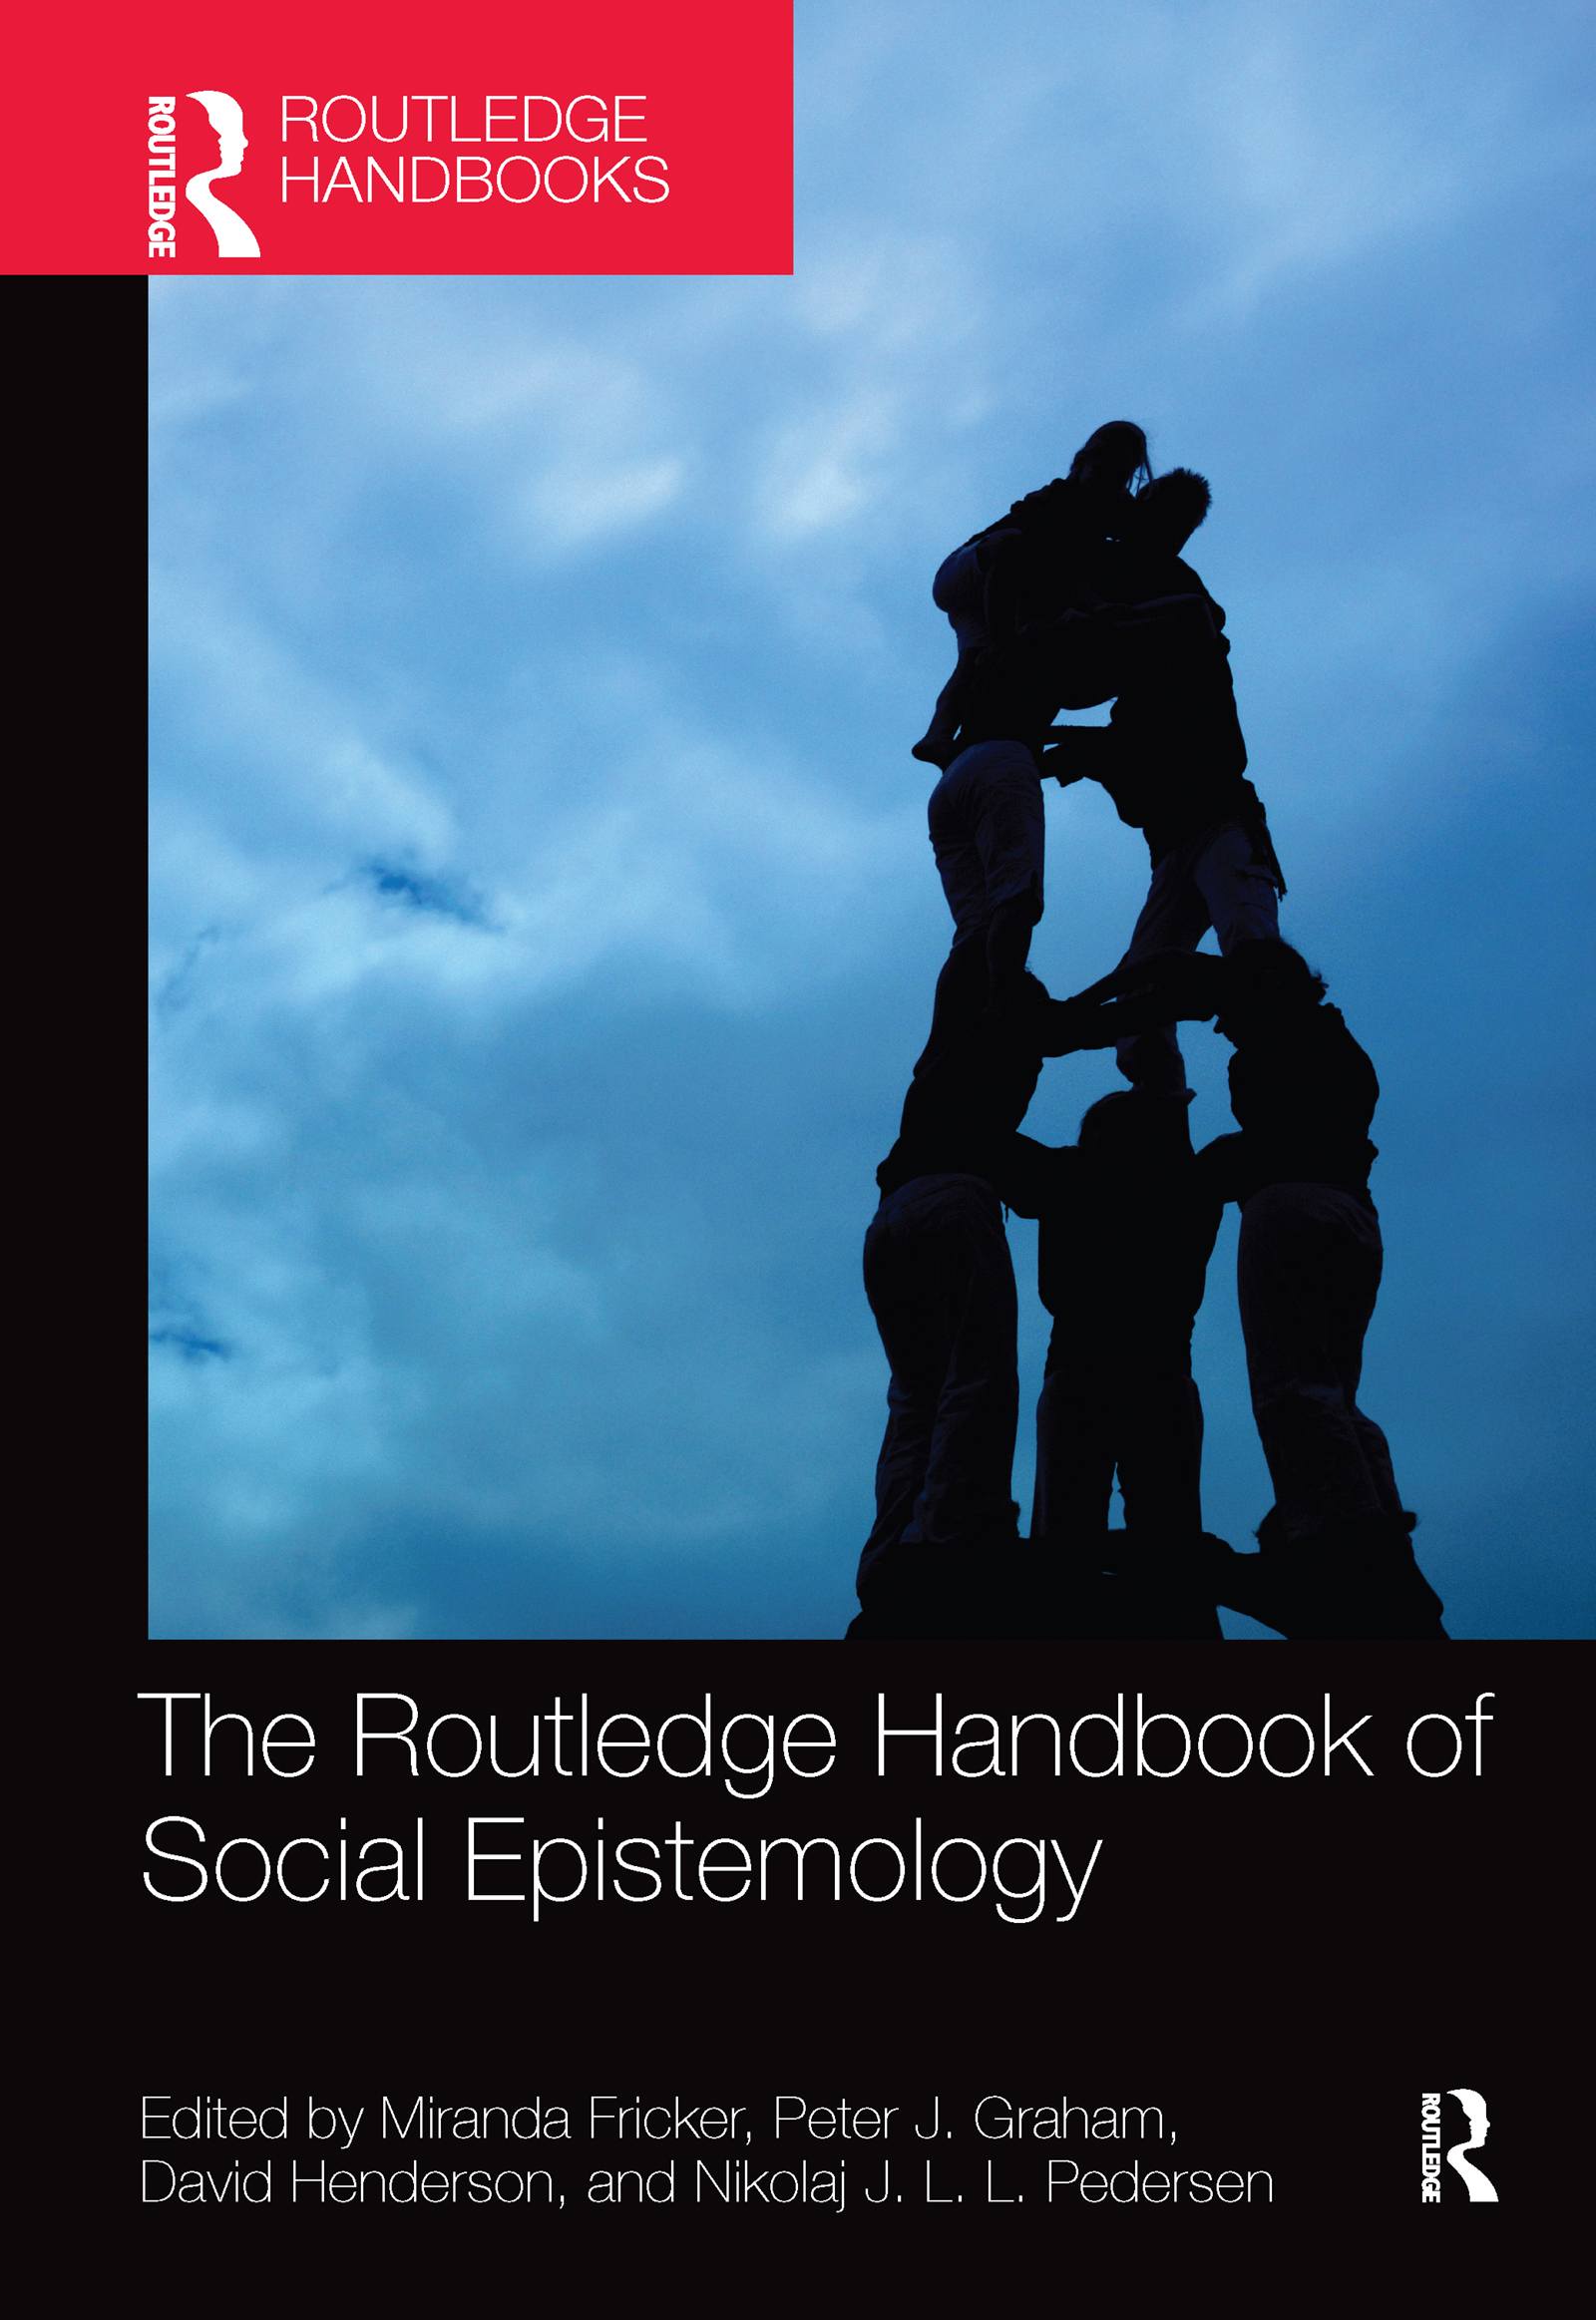 The Routledge Handbook of Social Epistemology